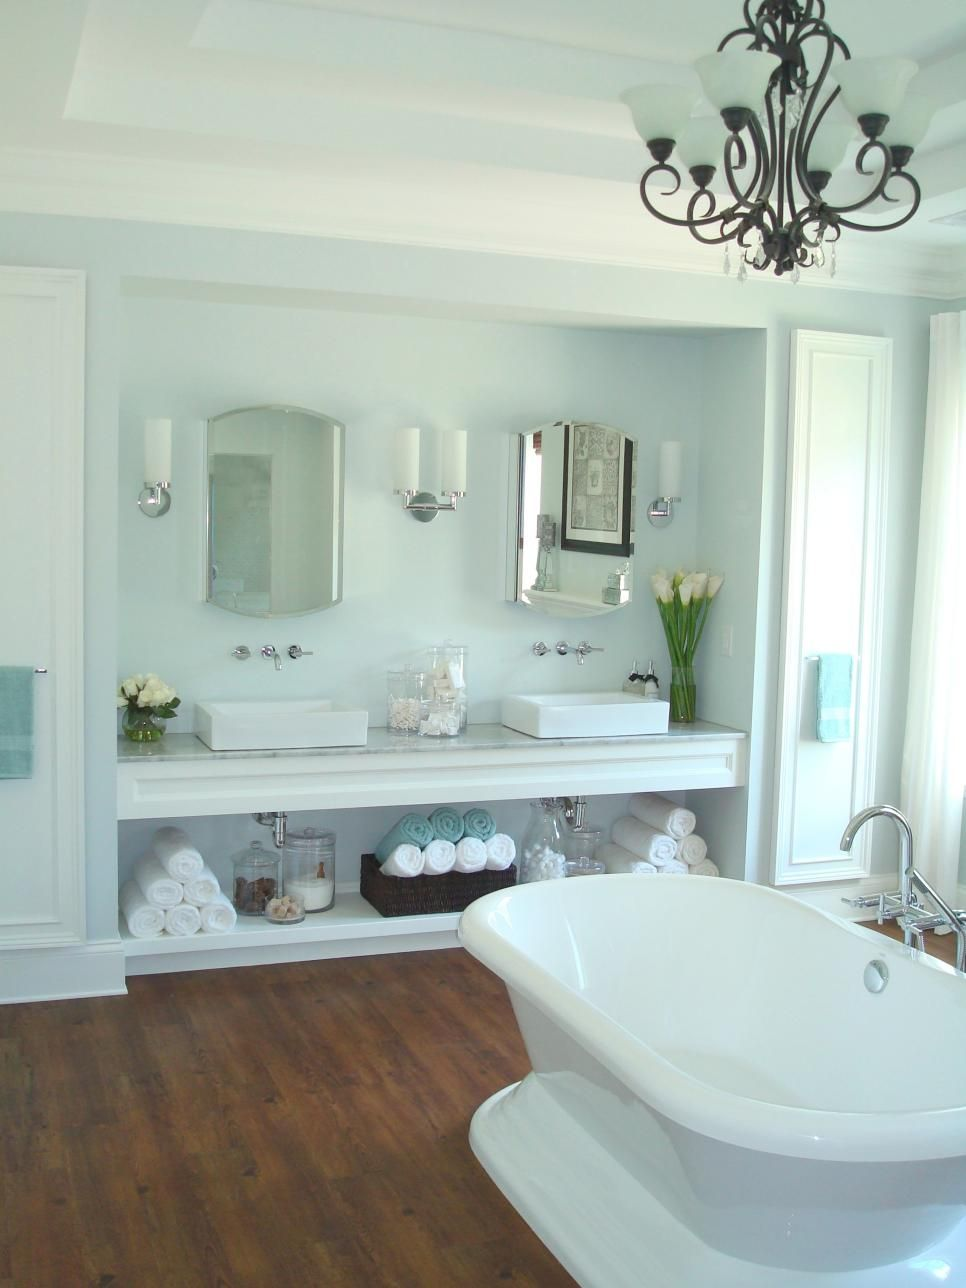 This luxurious spa bathroom features a freestanding, vintage ...